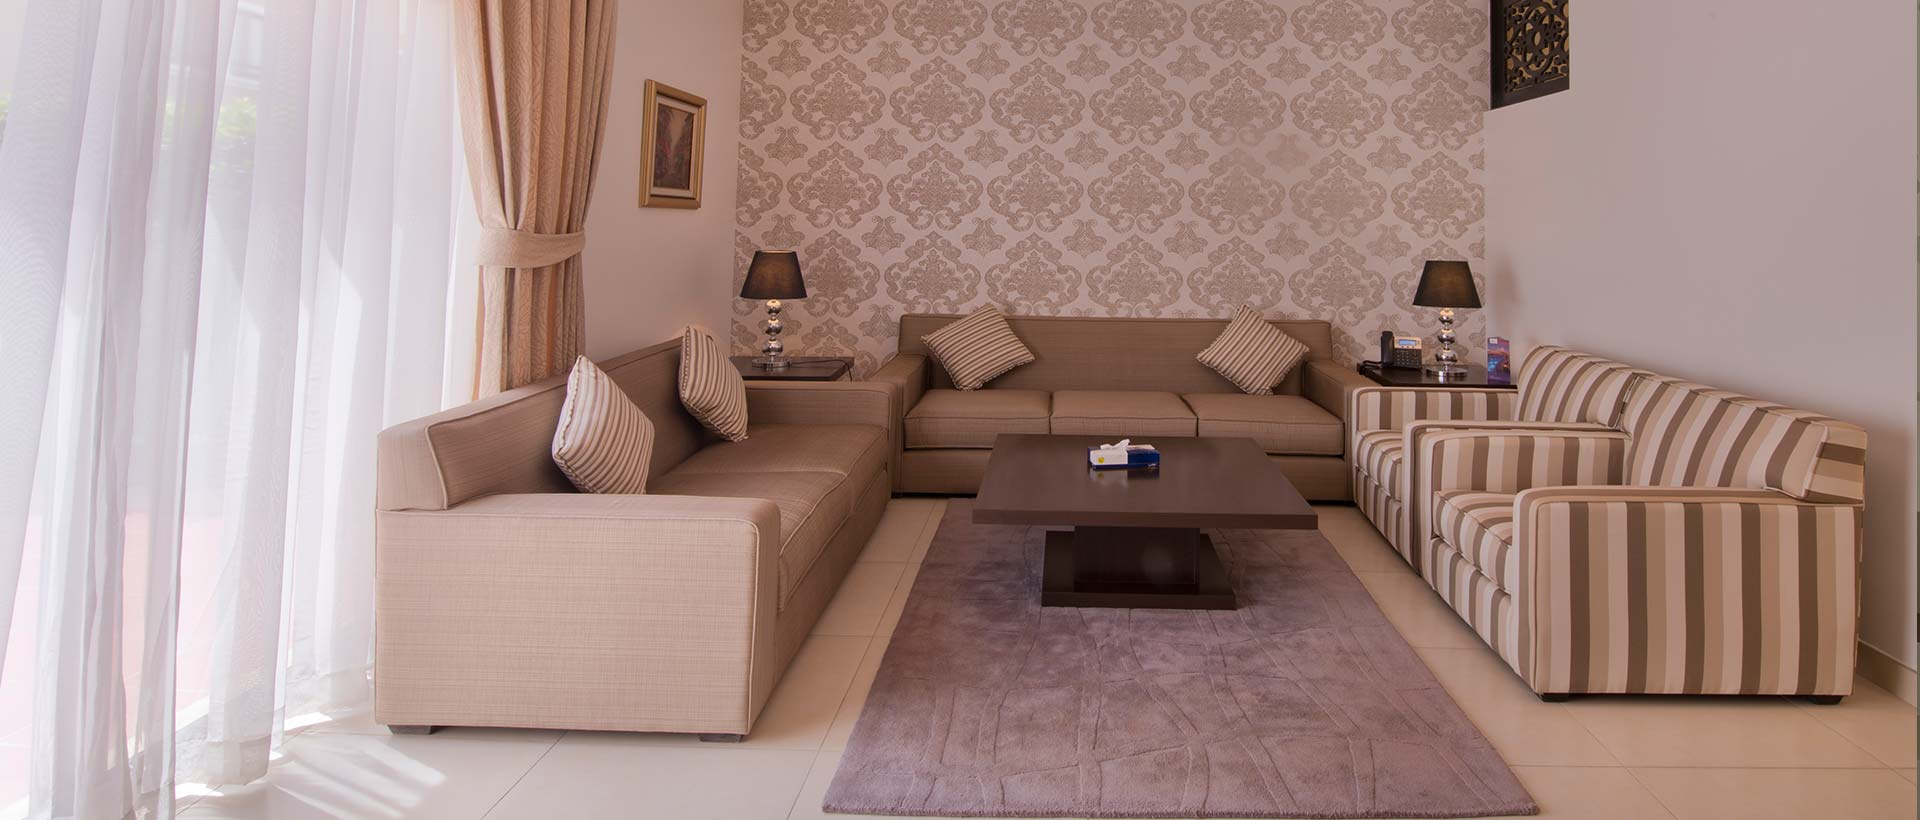 2-bedroom-villas-in-riyadh-for-expat-compound